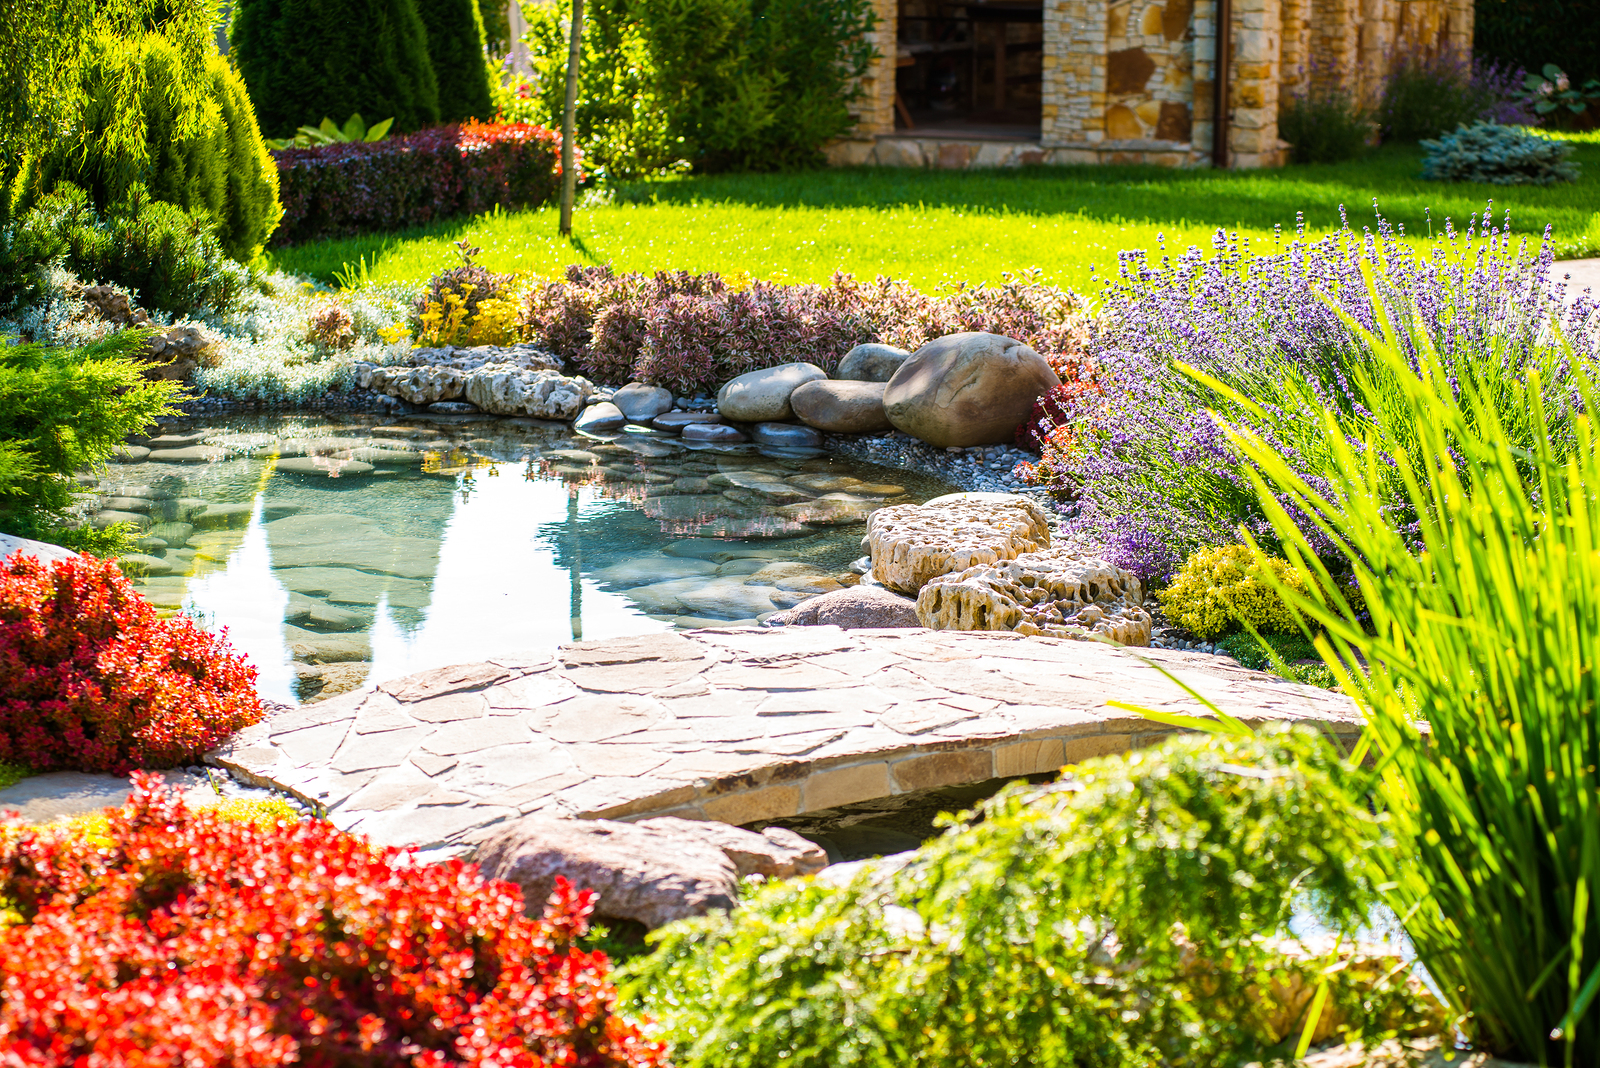 bigstock-Beautiful-Landscaping-With-Bea-170970950